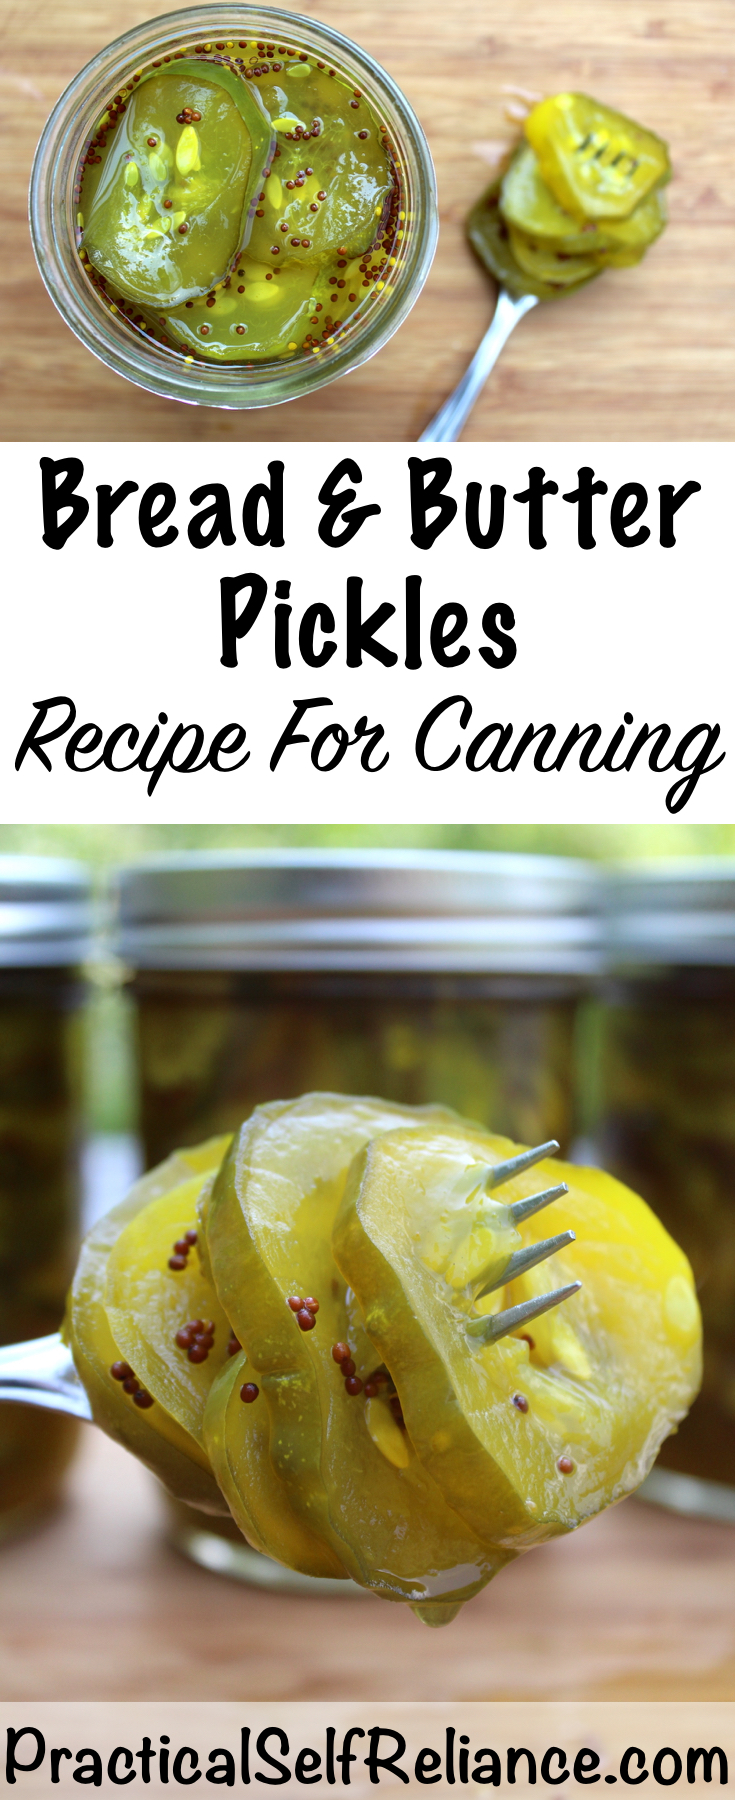 Bread and Butter Pickles Canning Recipe #pickles #recipe #howtomakepickles #canning #foodpreservation #preservingfood #homesteading #breadandbutterpickles